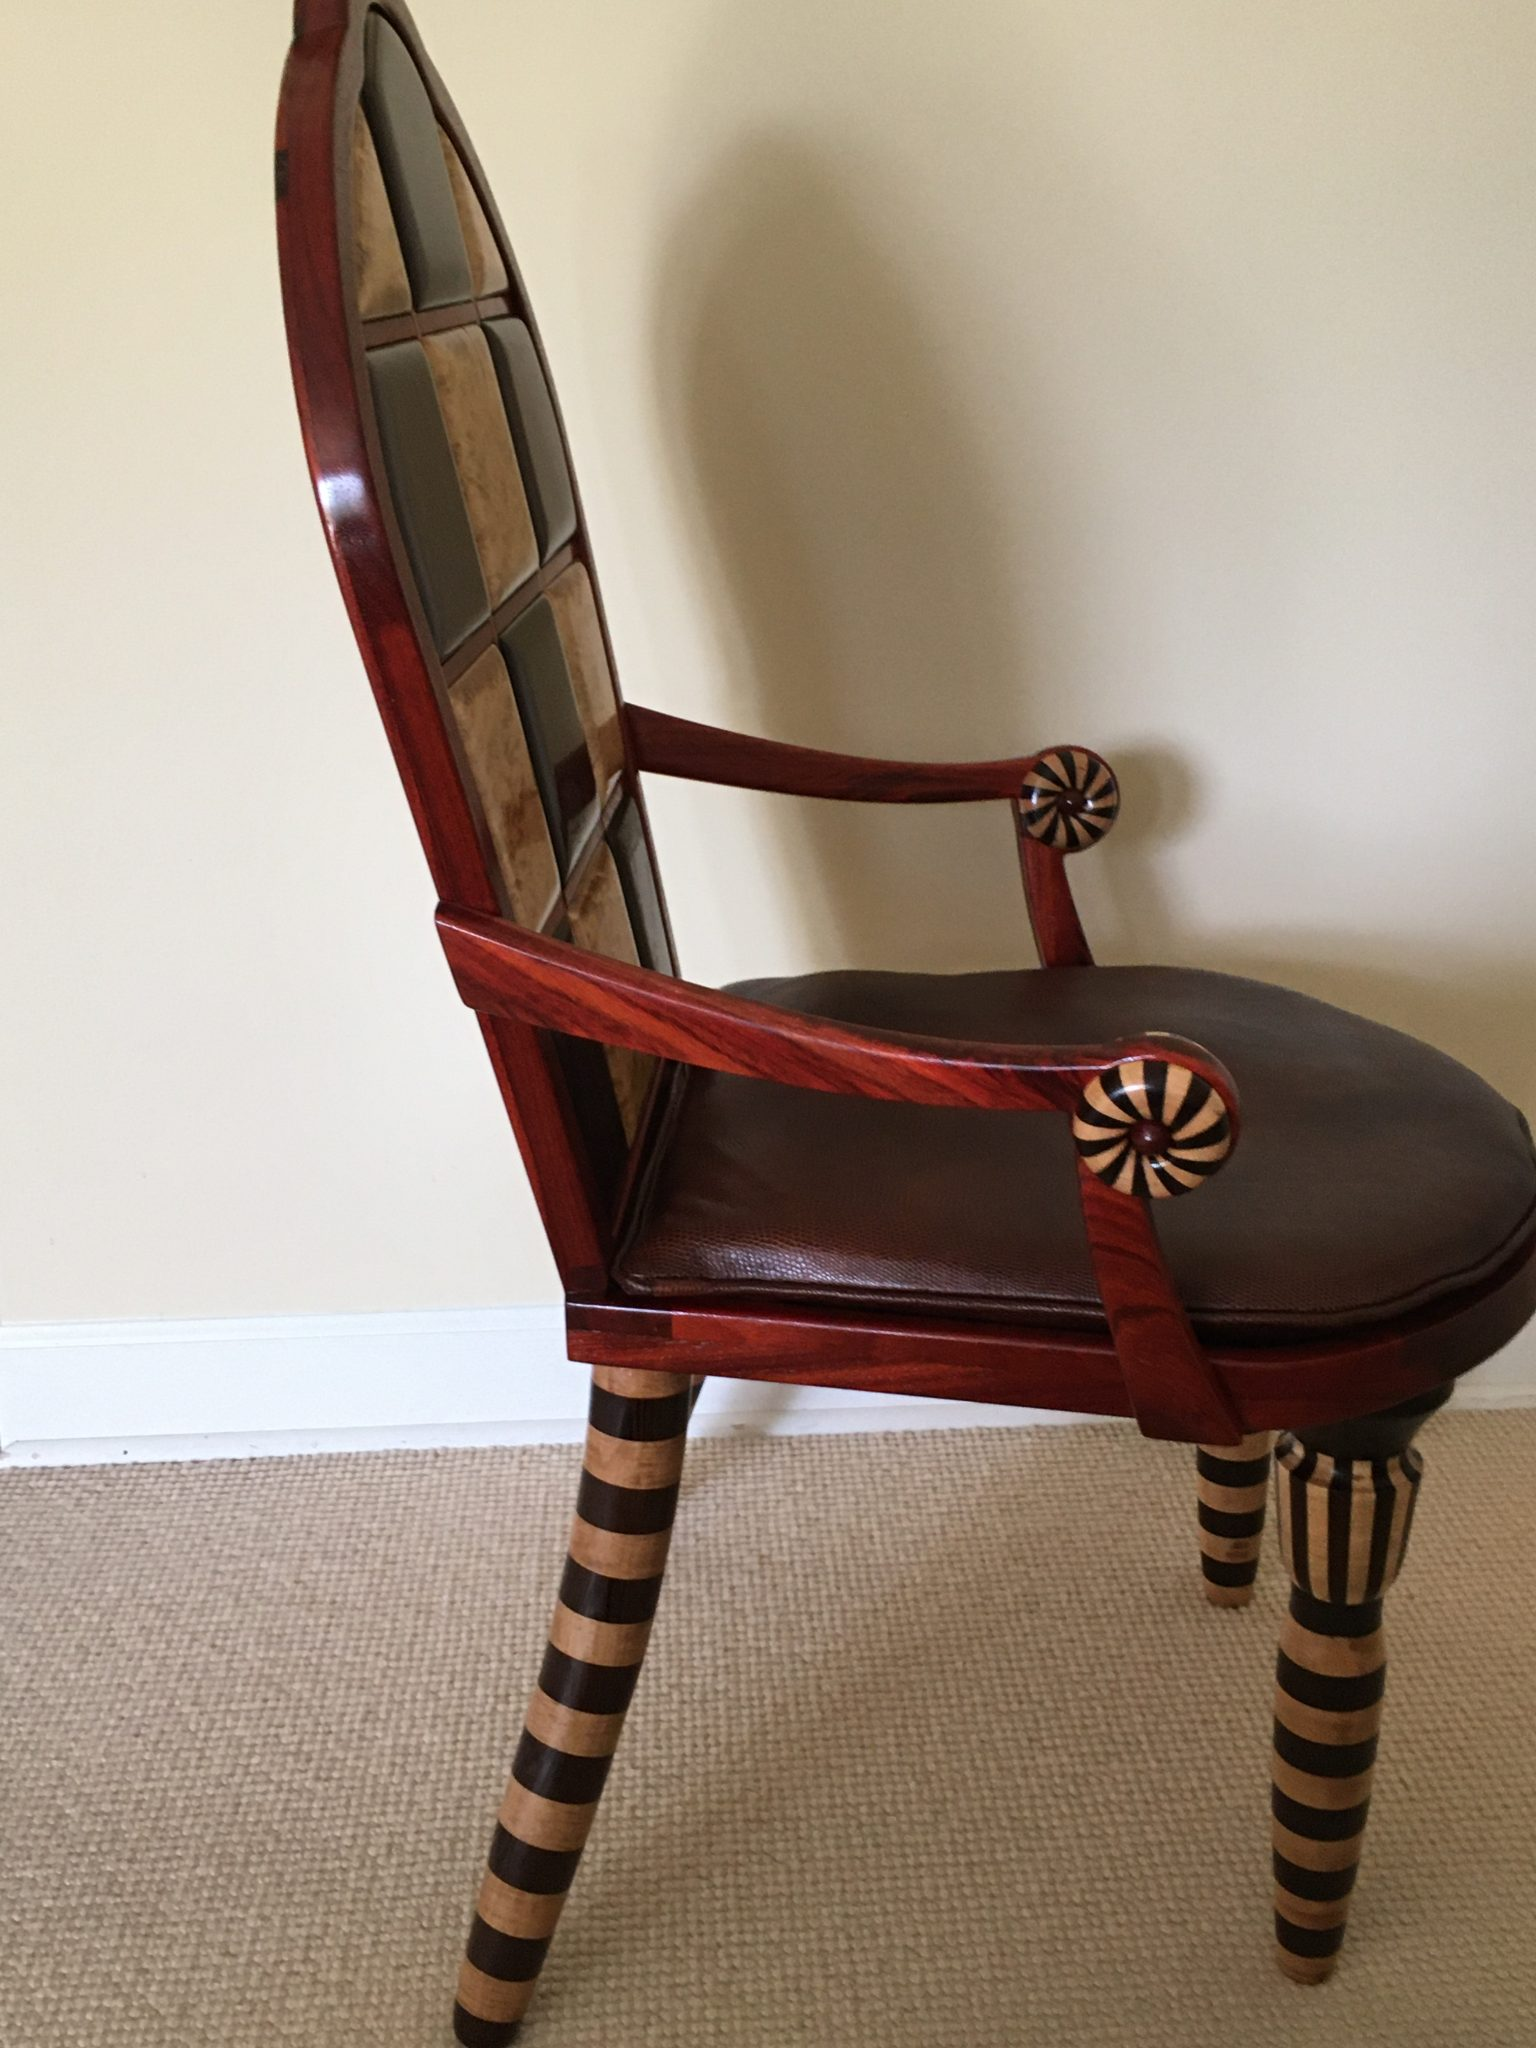 Whimsical chair inlayed with multiple exotic wood species combined with segmented turnings.